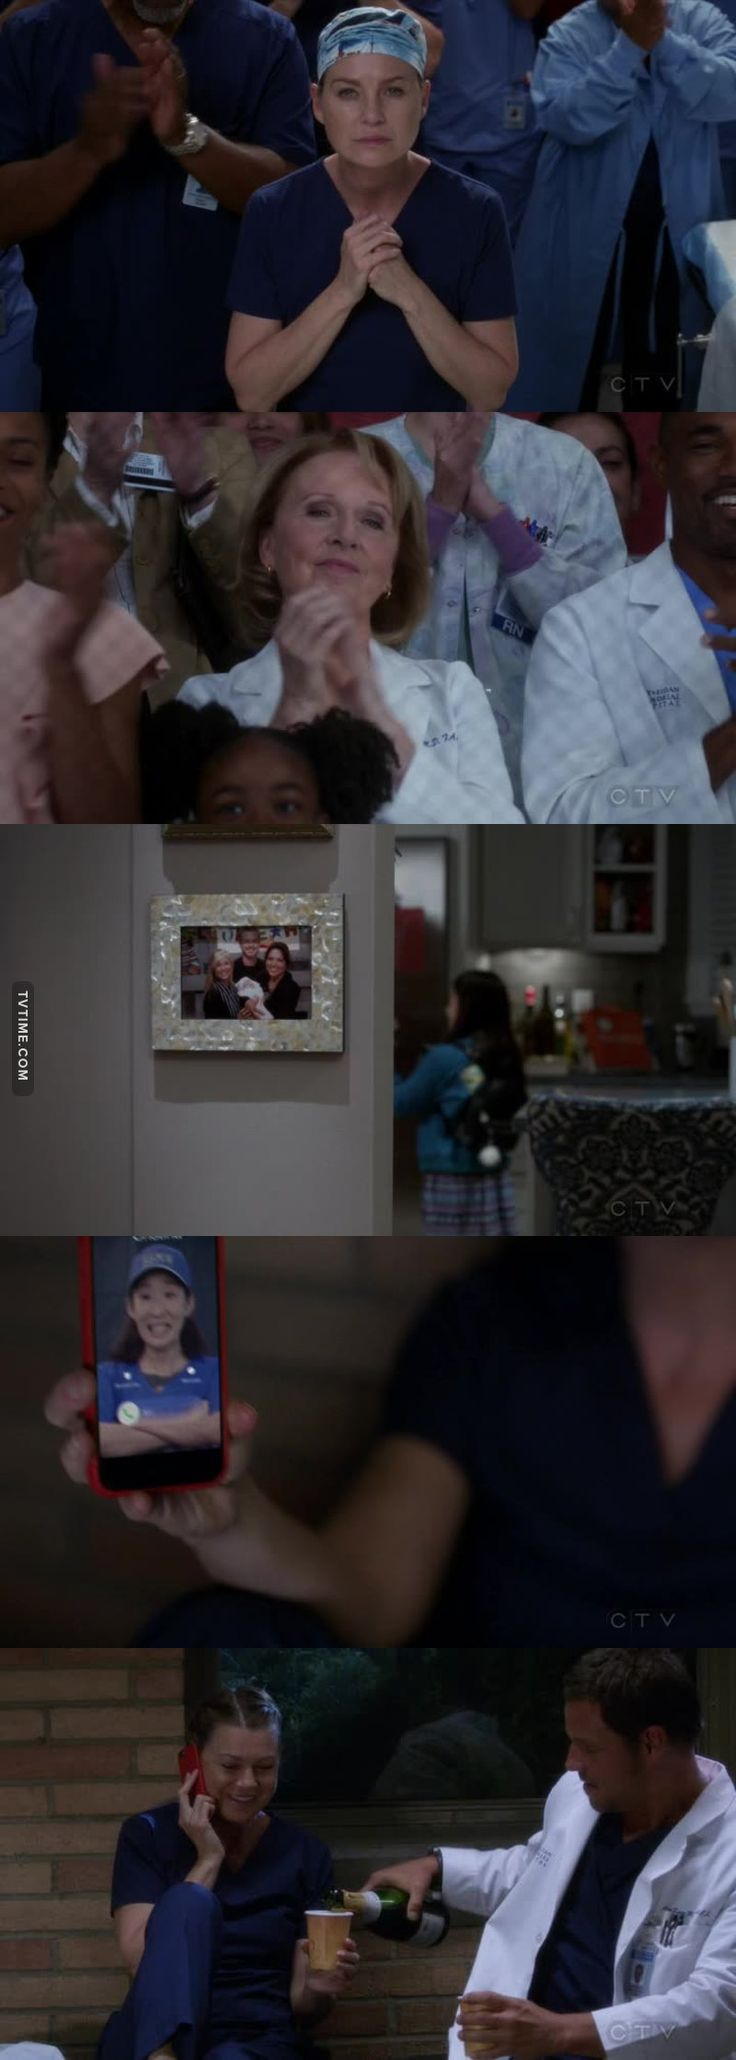 GREY'S ANATOMY S14E07 I didn't realize how much i missed the old grey's anatomy until today.